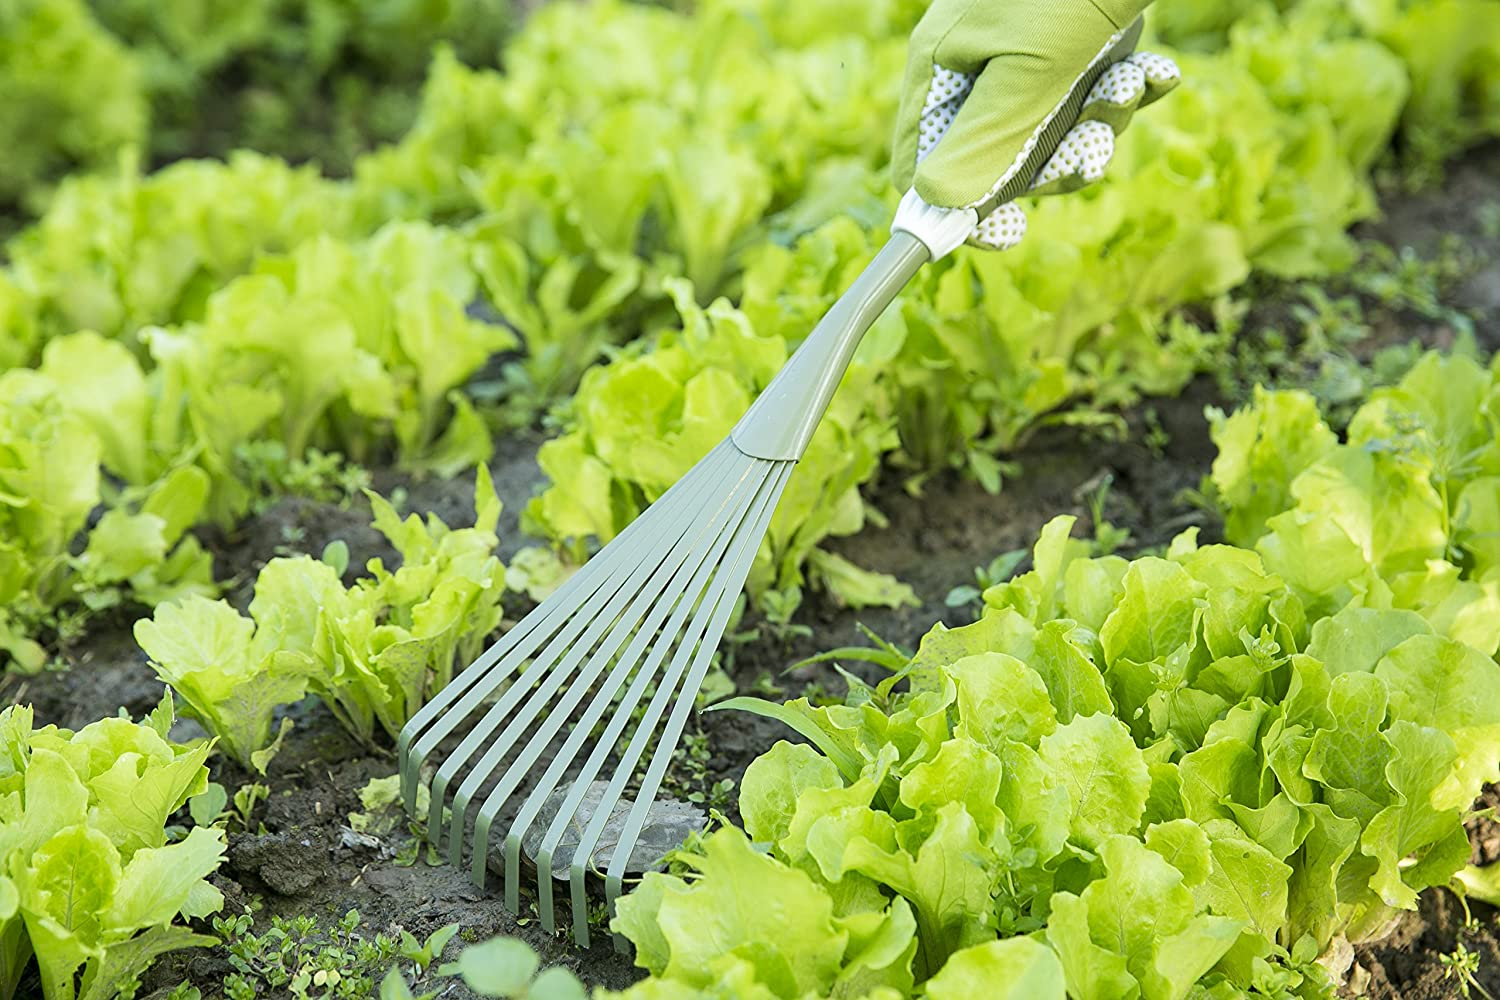 Top 10 Best Garden Tools in 2020